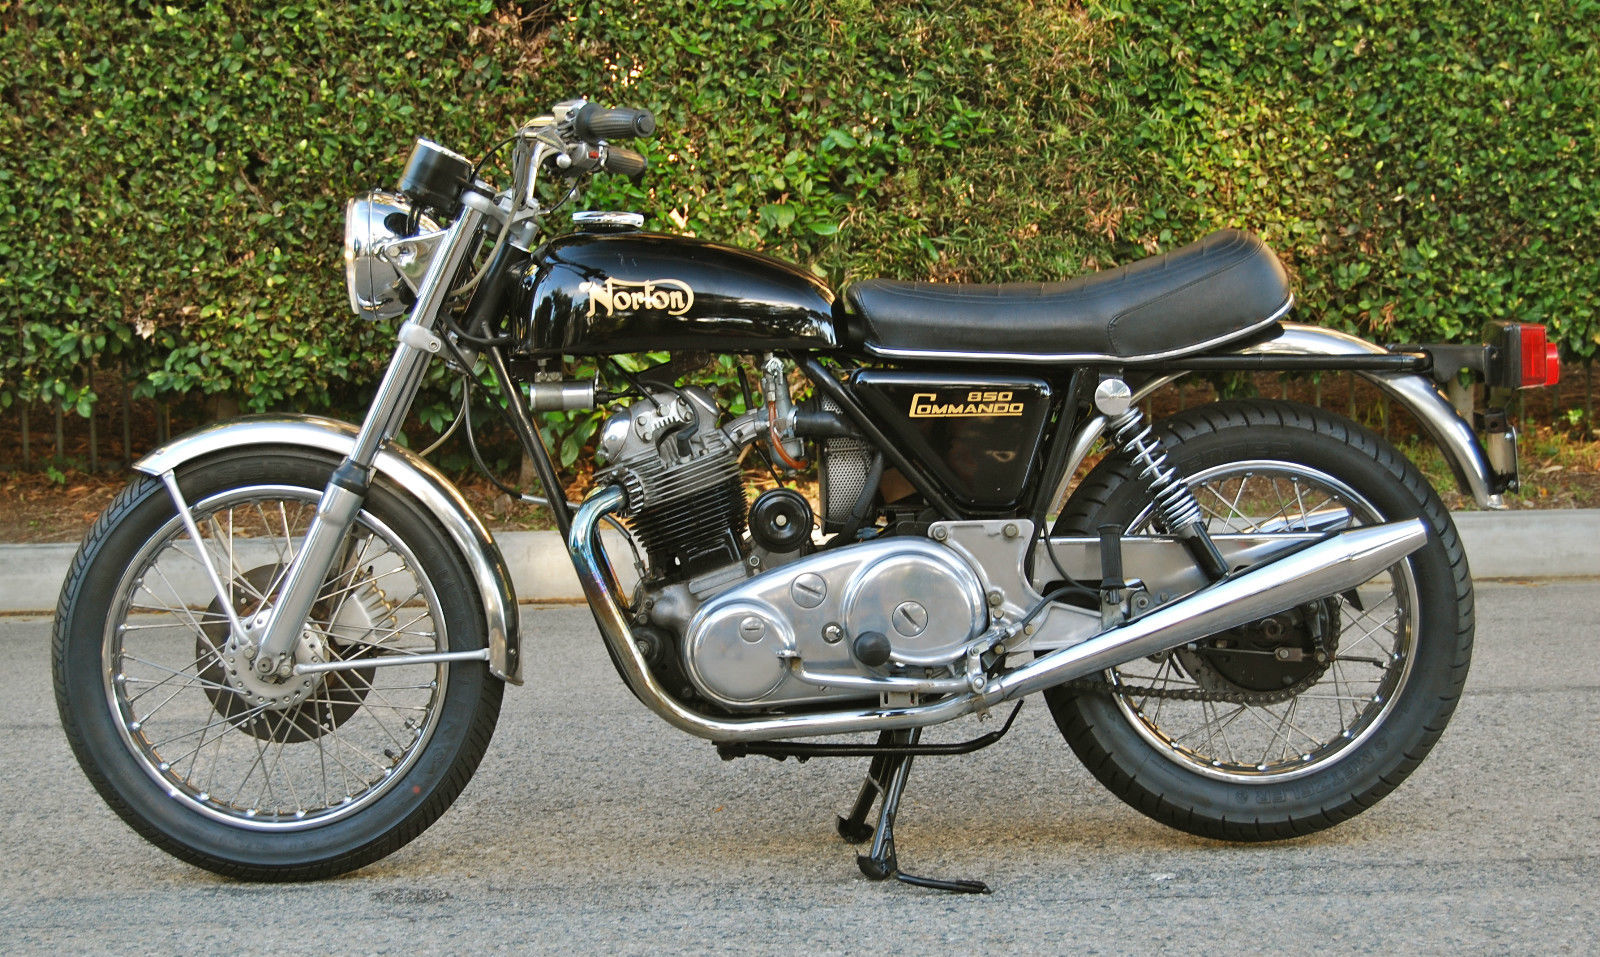 Restored Norton Commando 1974 Photographs At Classic